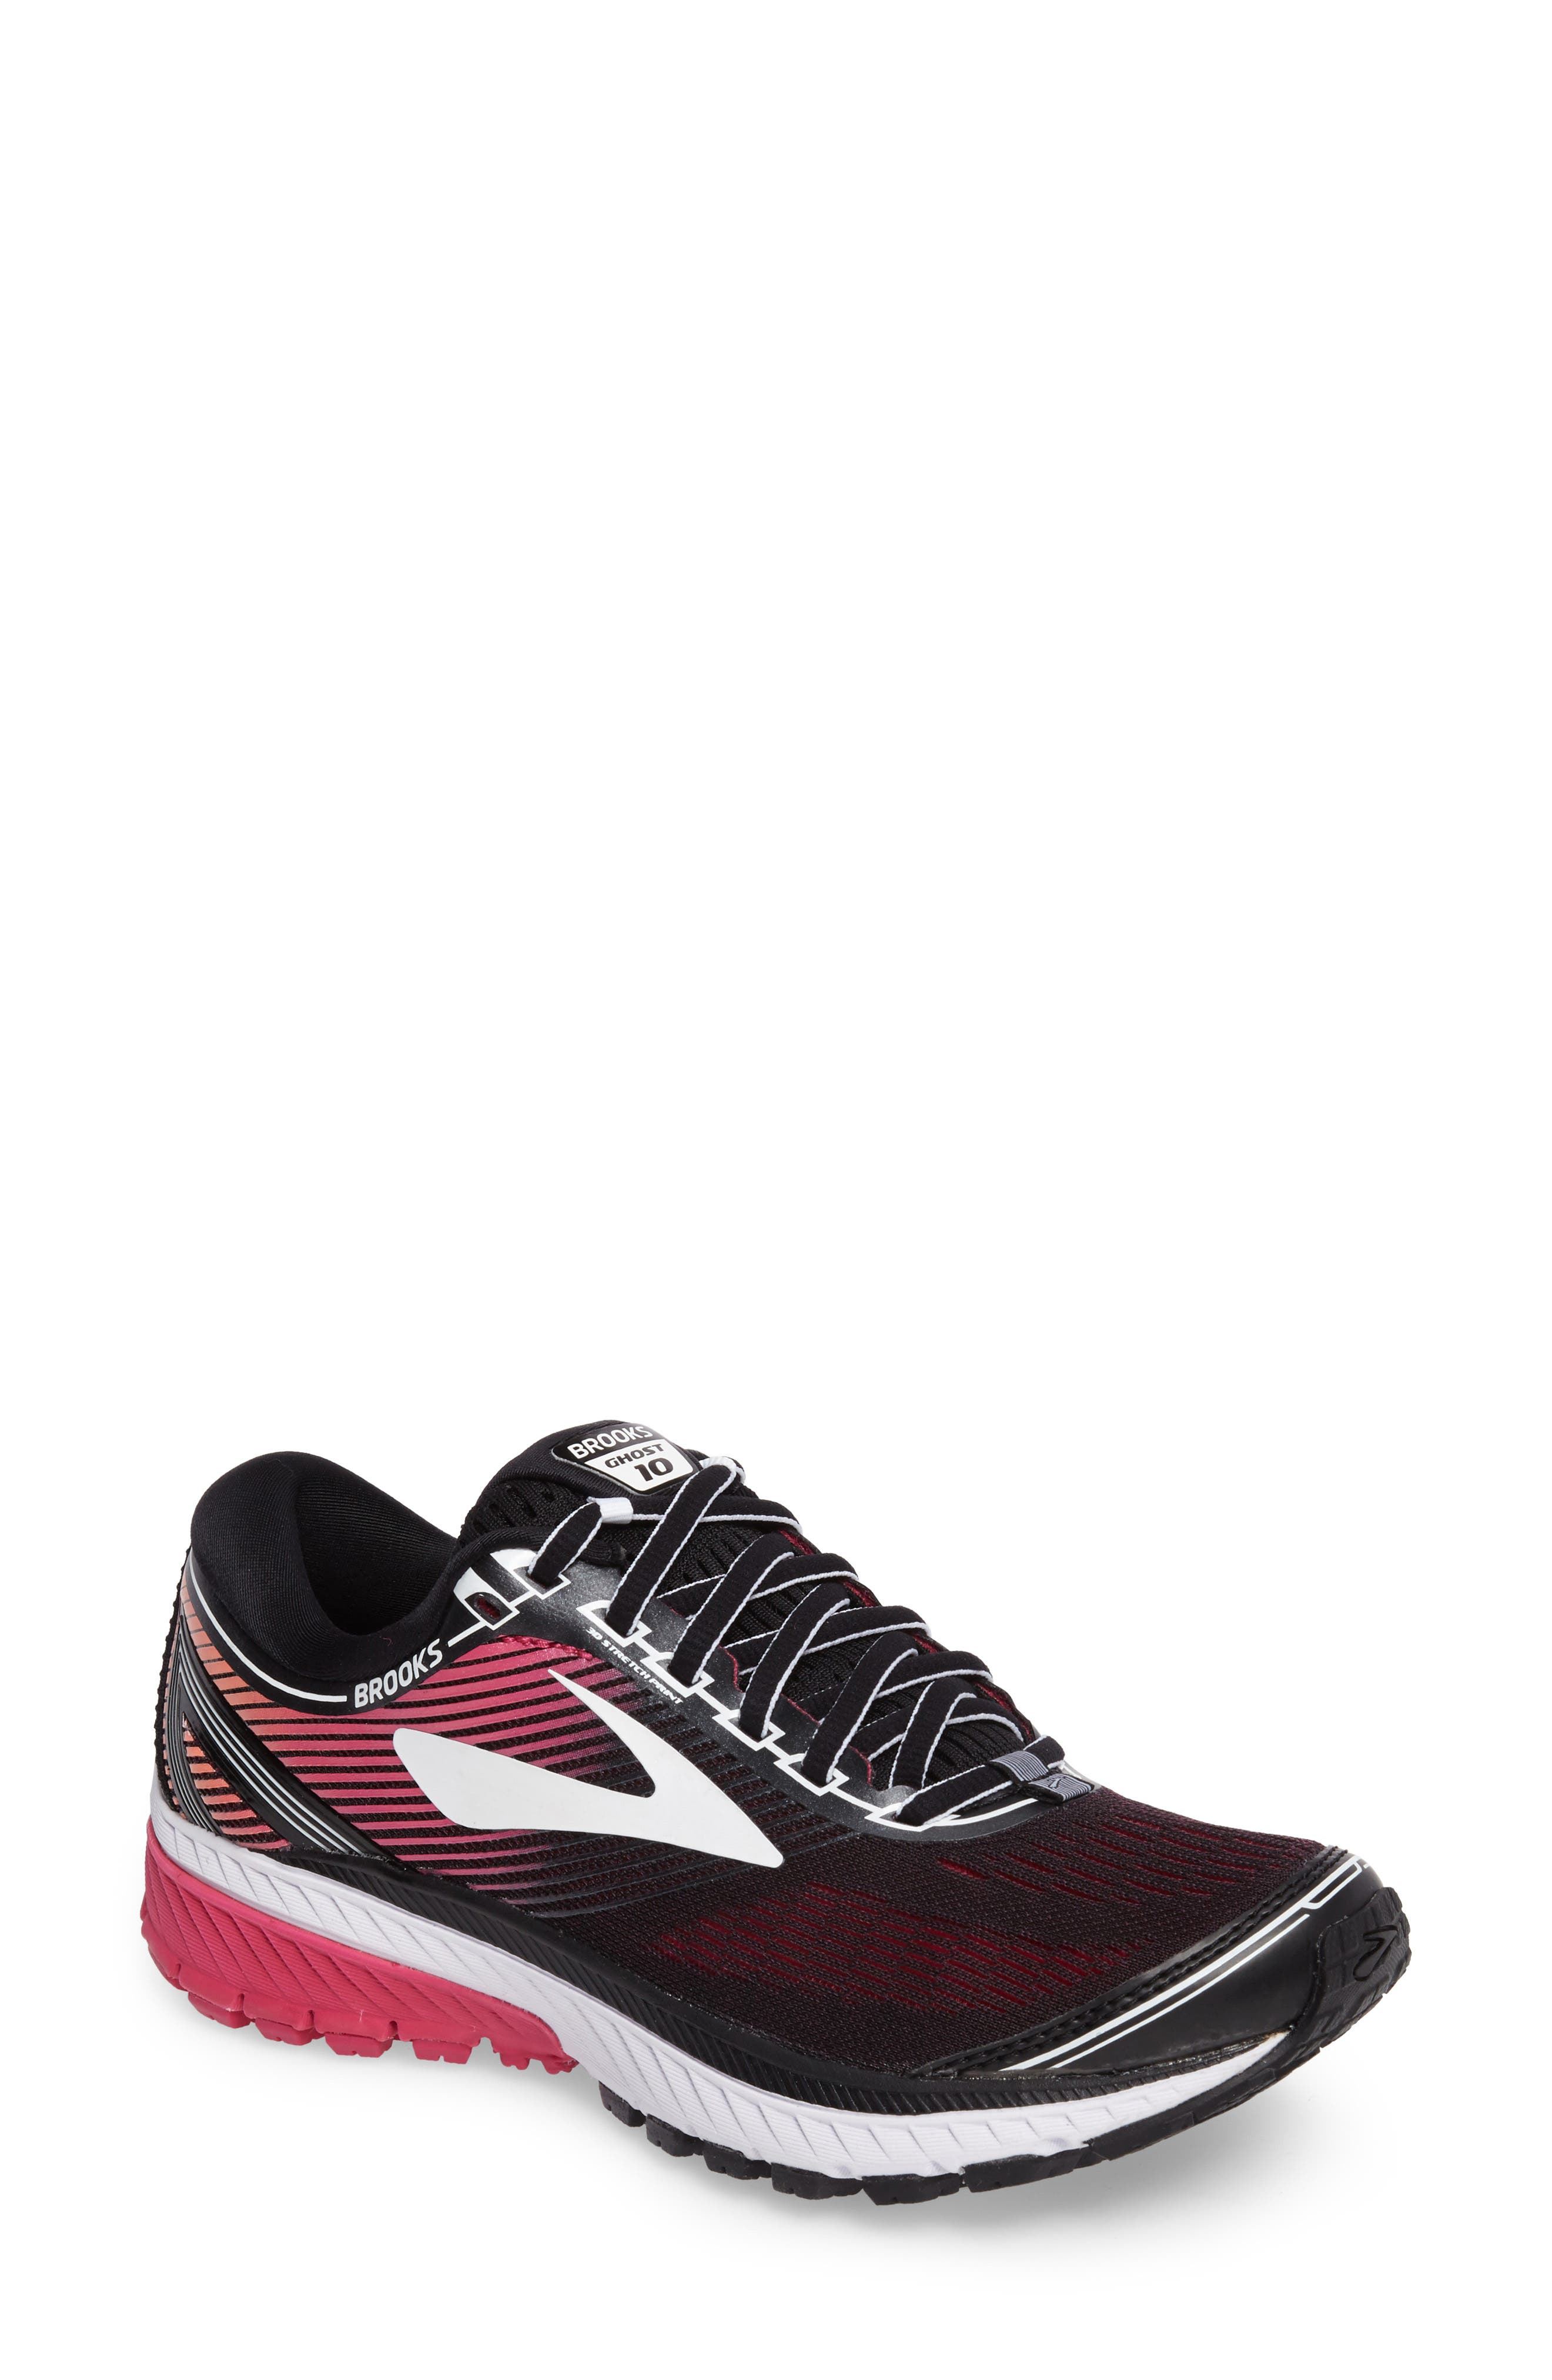 Alternate Image 1 Selected - Brooks Ghost 10 Running Shoe (Women)